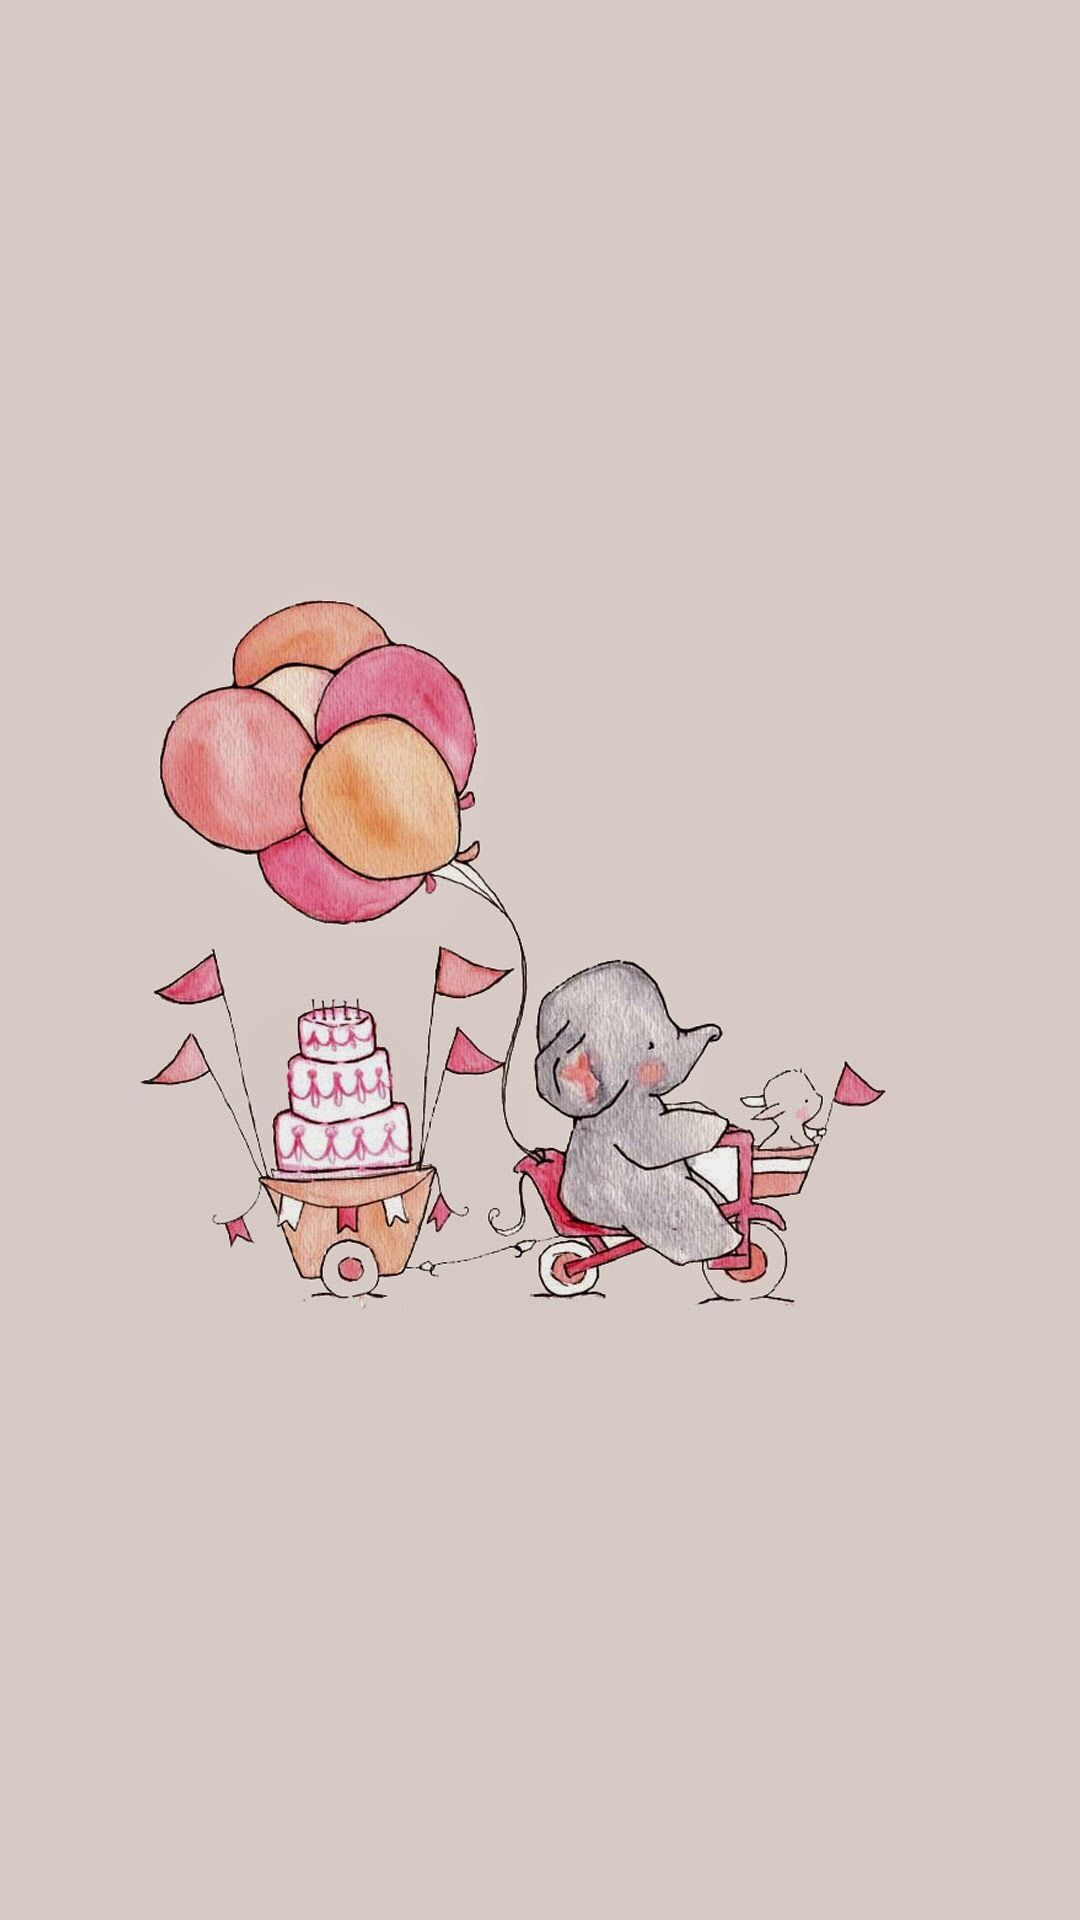 12 Elephant Wallpaper Cute Awesome 2k Images Elephant Wallpaper Cute Drawings Cartoon Elephant